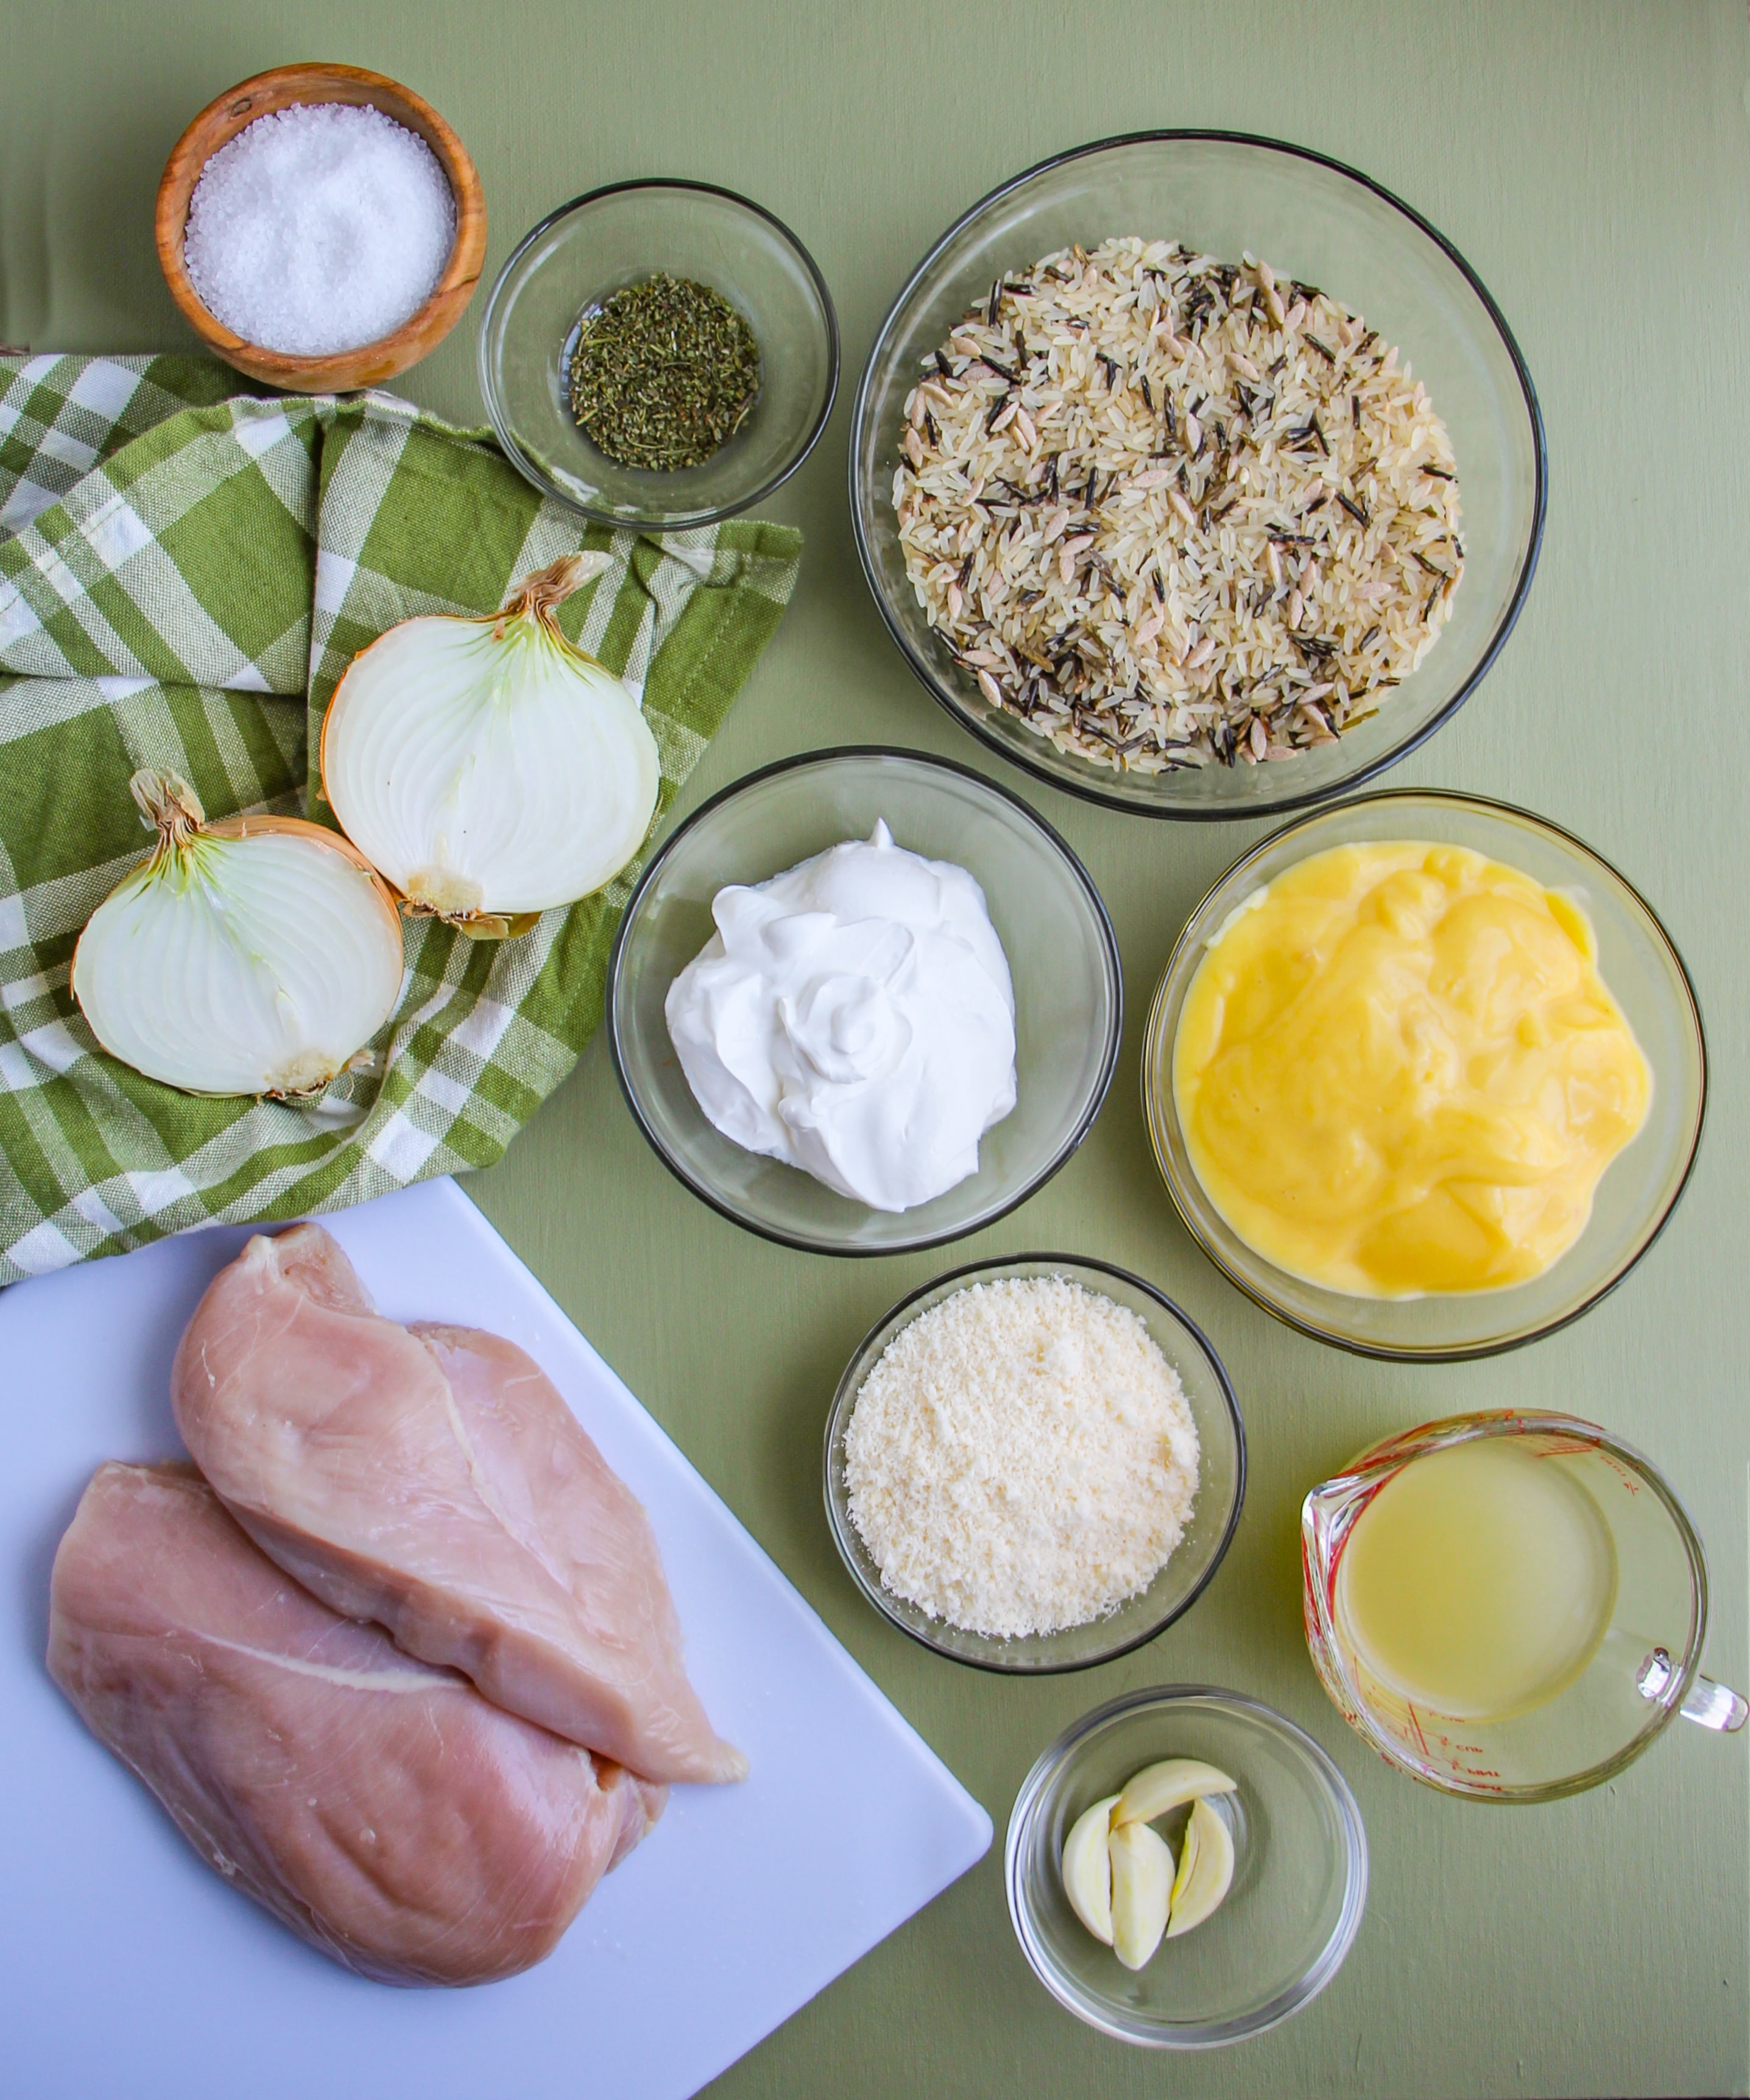 Ingredients need to make Chicken and Wild Rice Casserole displayed in clear glass bowls on a green background.